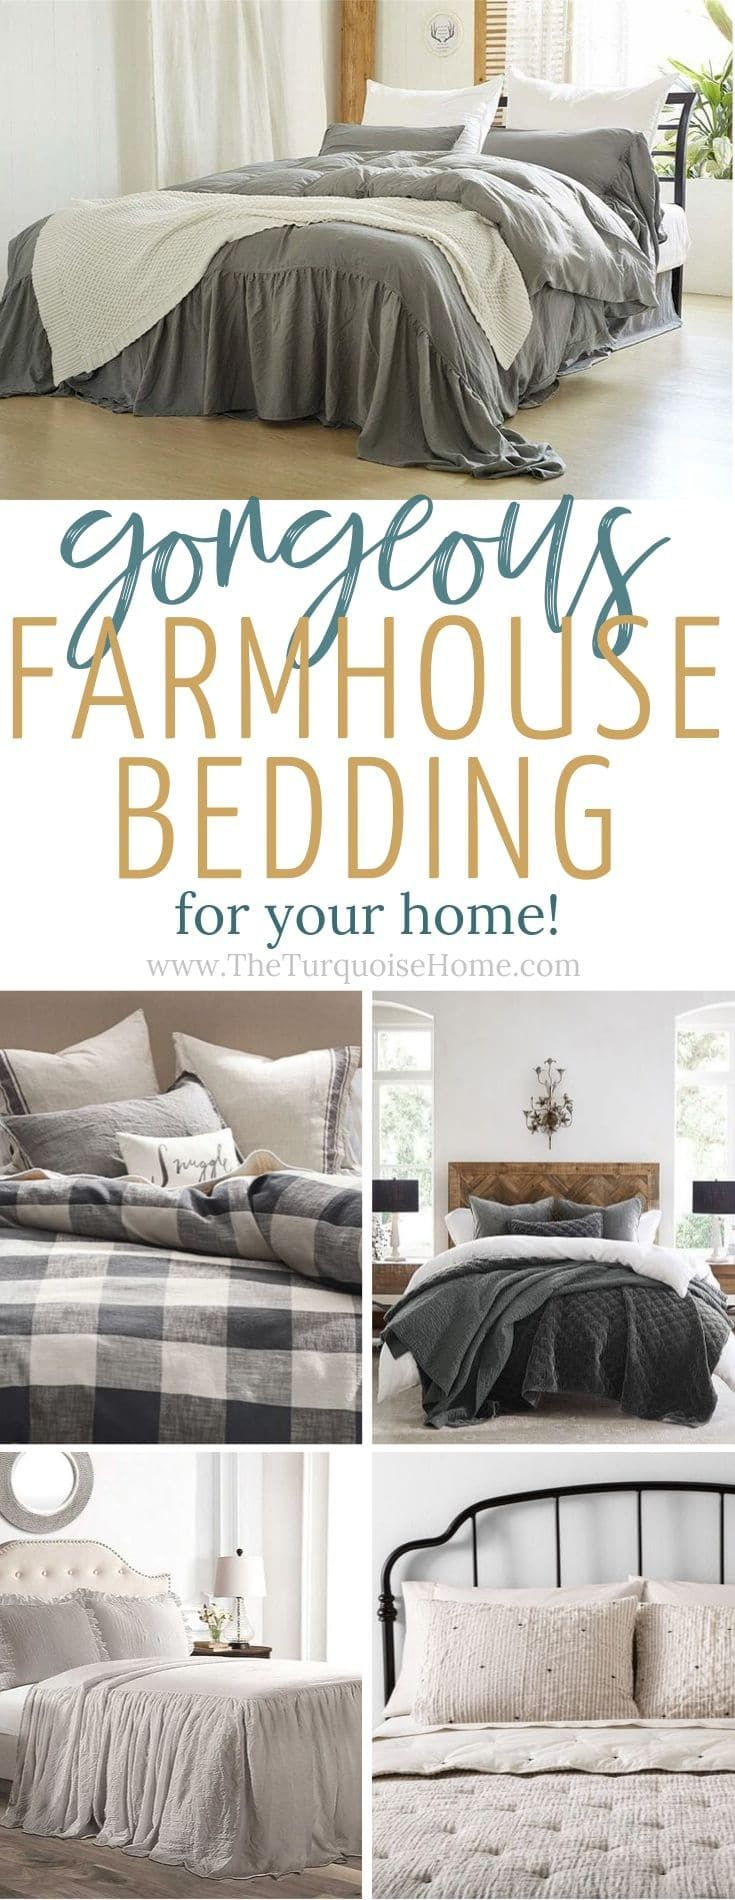 Gorgeous Farmhouse Bedding To Add To Your Room The Turquoise Home Farmhouse Bedding Farmhouse Bedding Sets Farmhouse Style Bedding